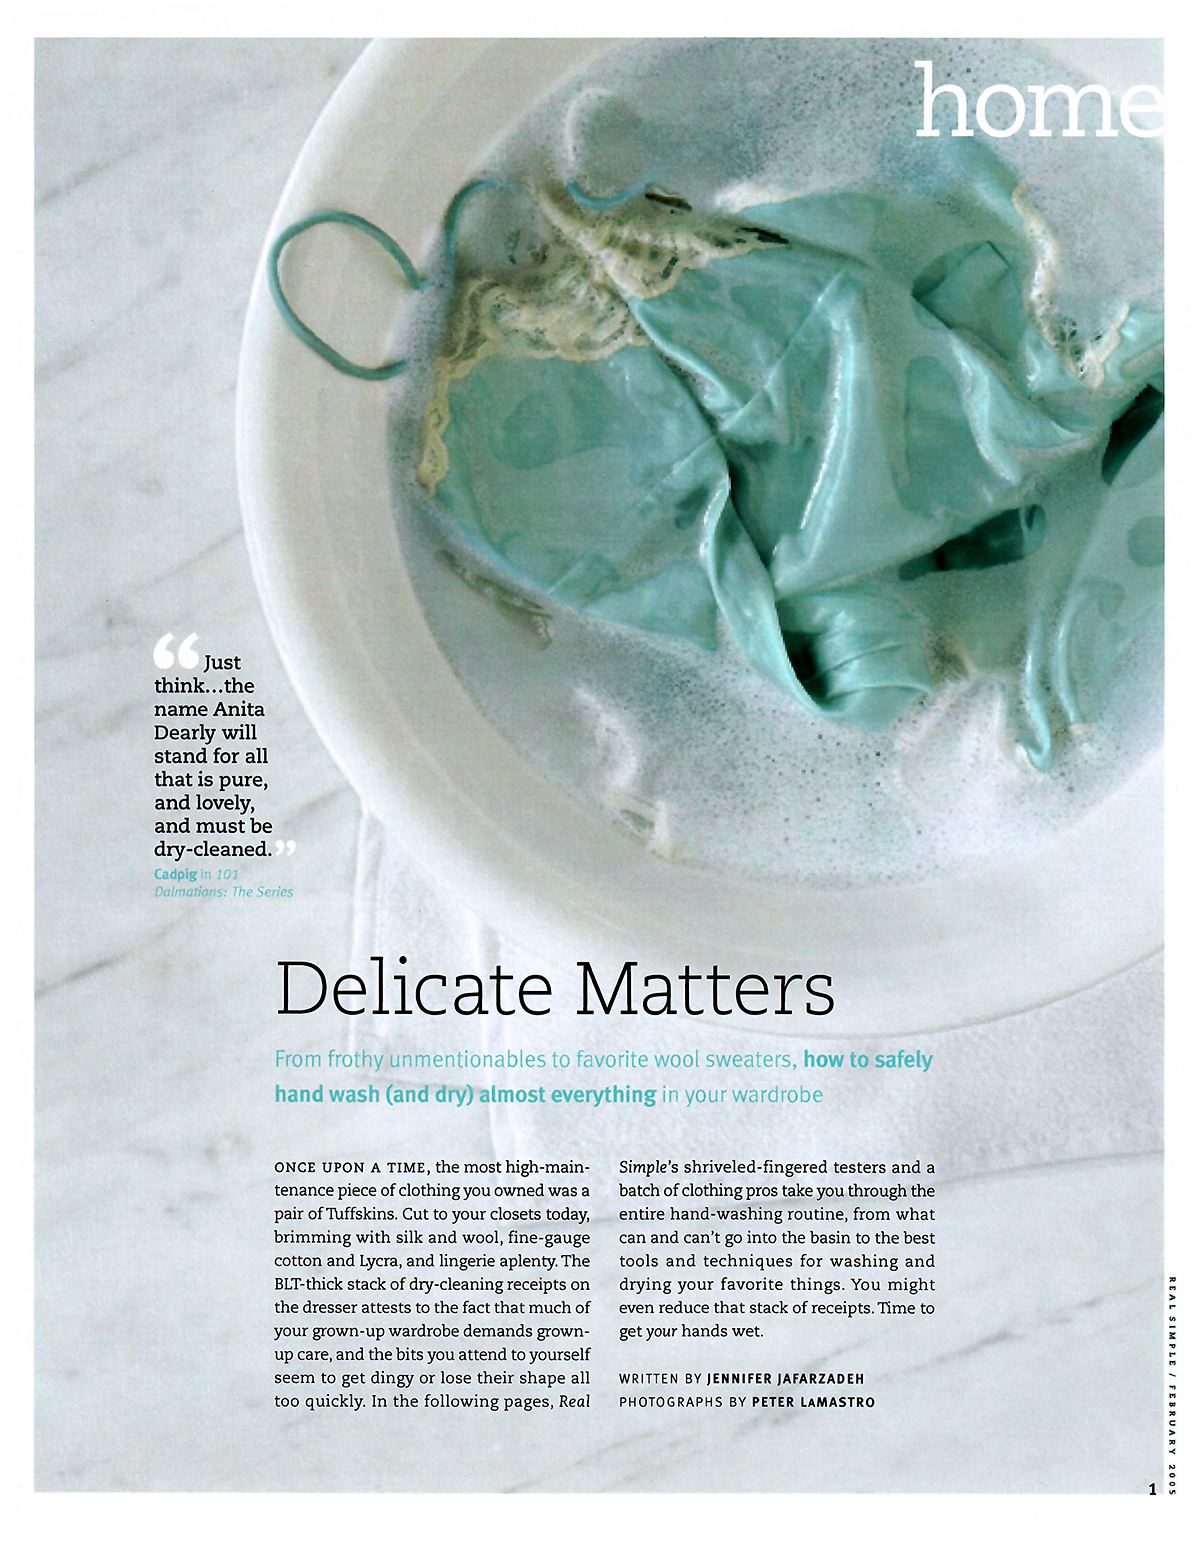 Delicate Matters page